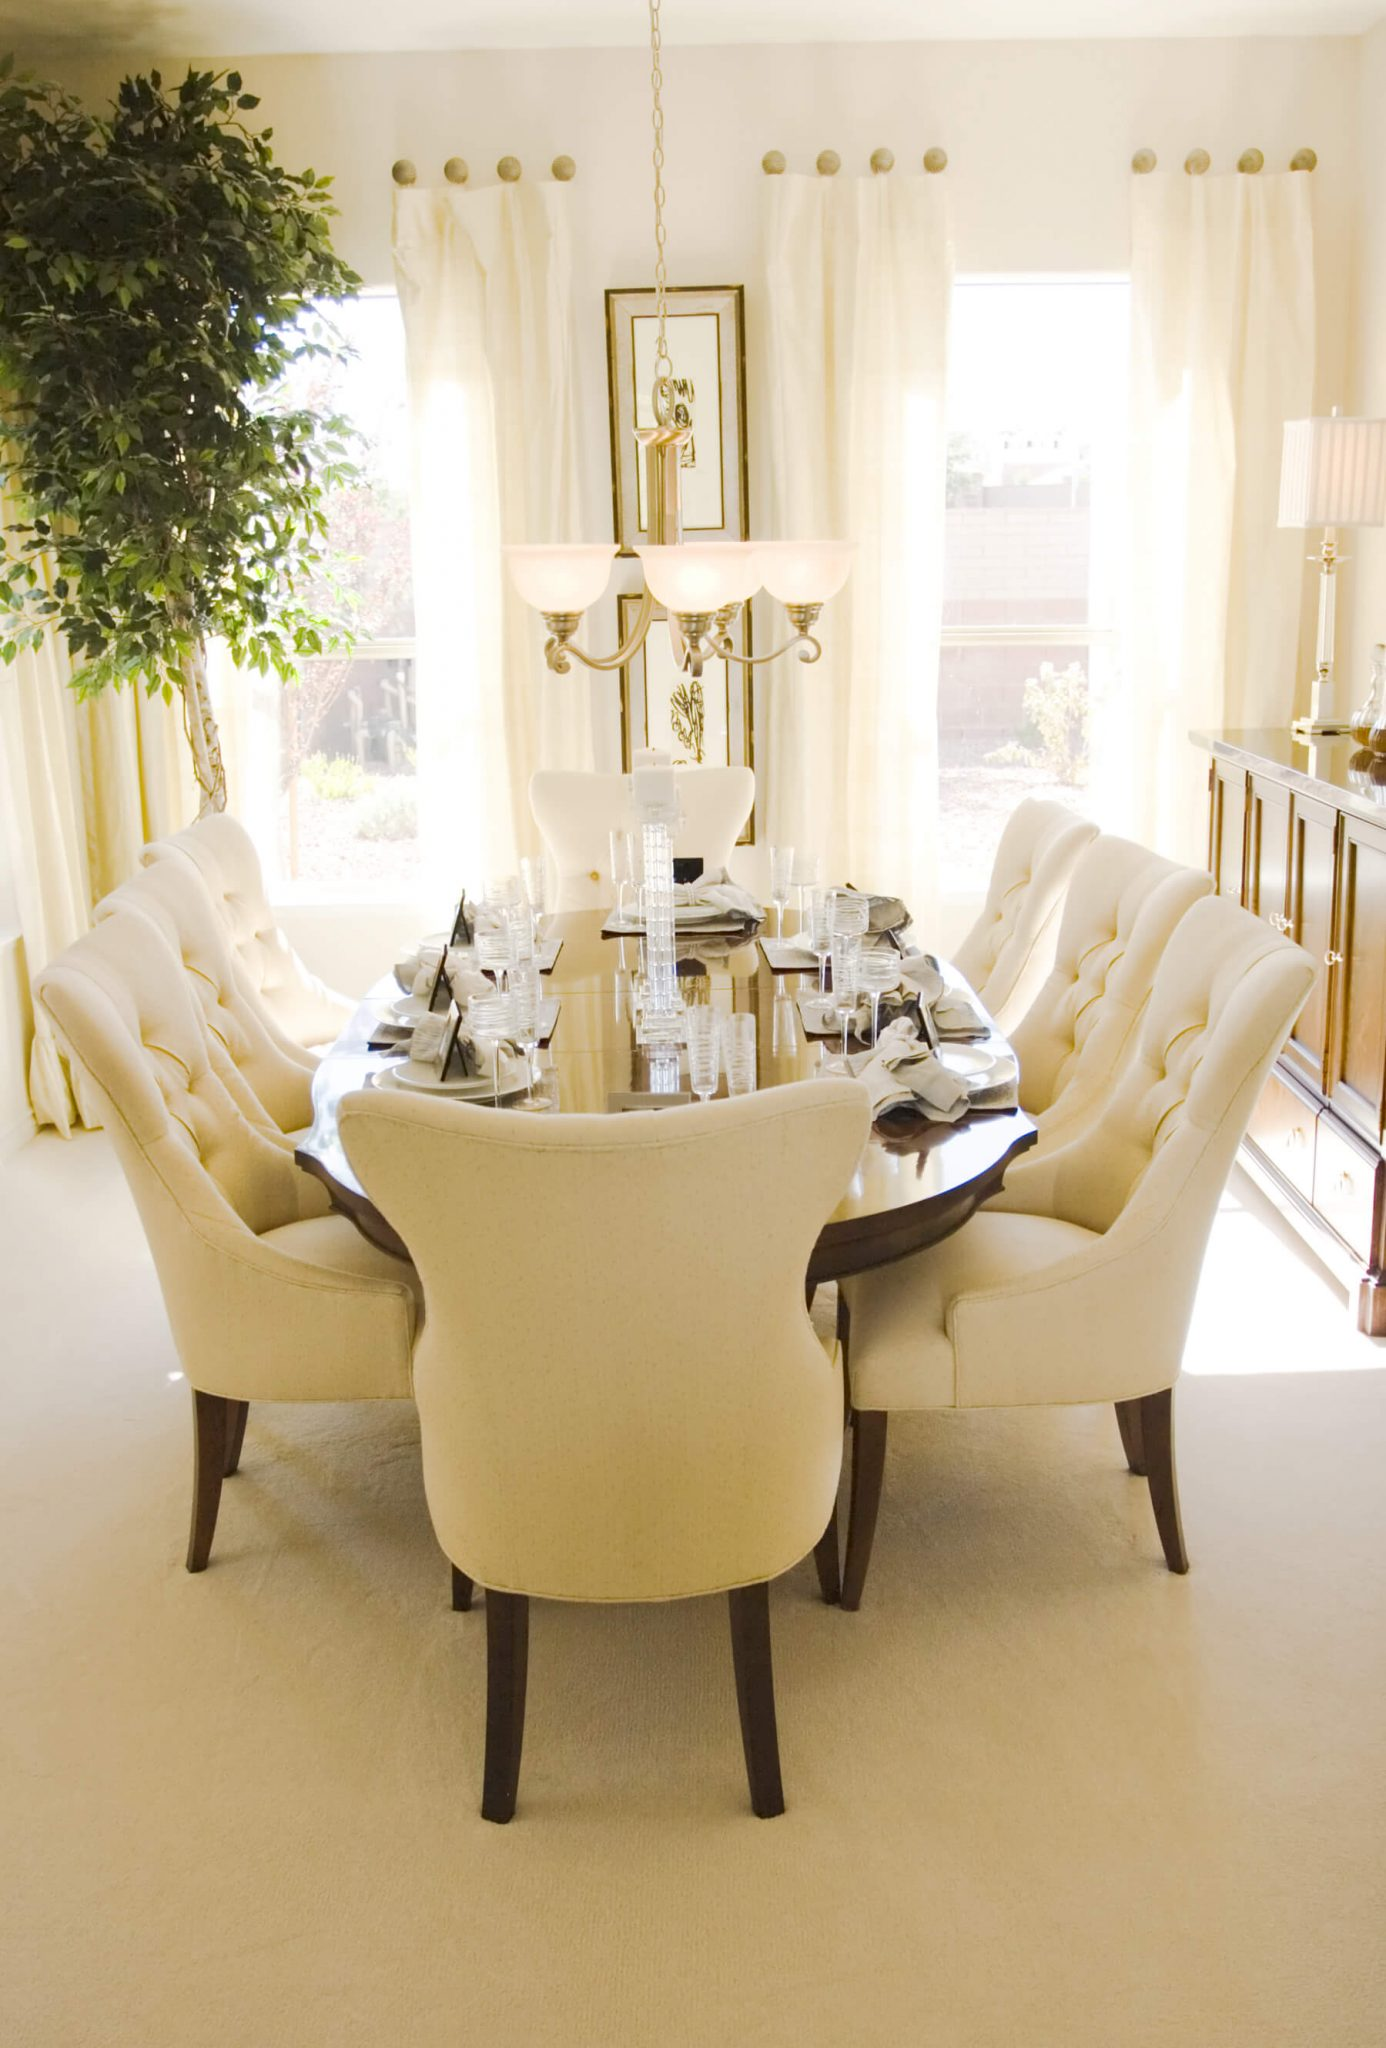 Wooden chairs for living room - Bright Sunny Dining Room With Oval Wood Table And Eight Plush Cream Colored Dining Chairs